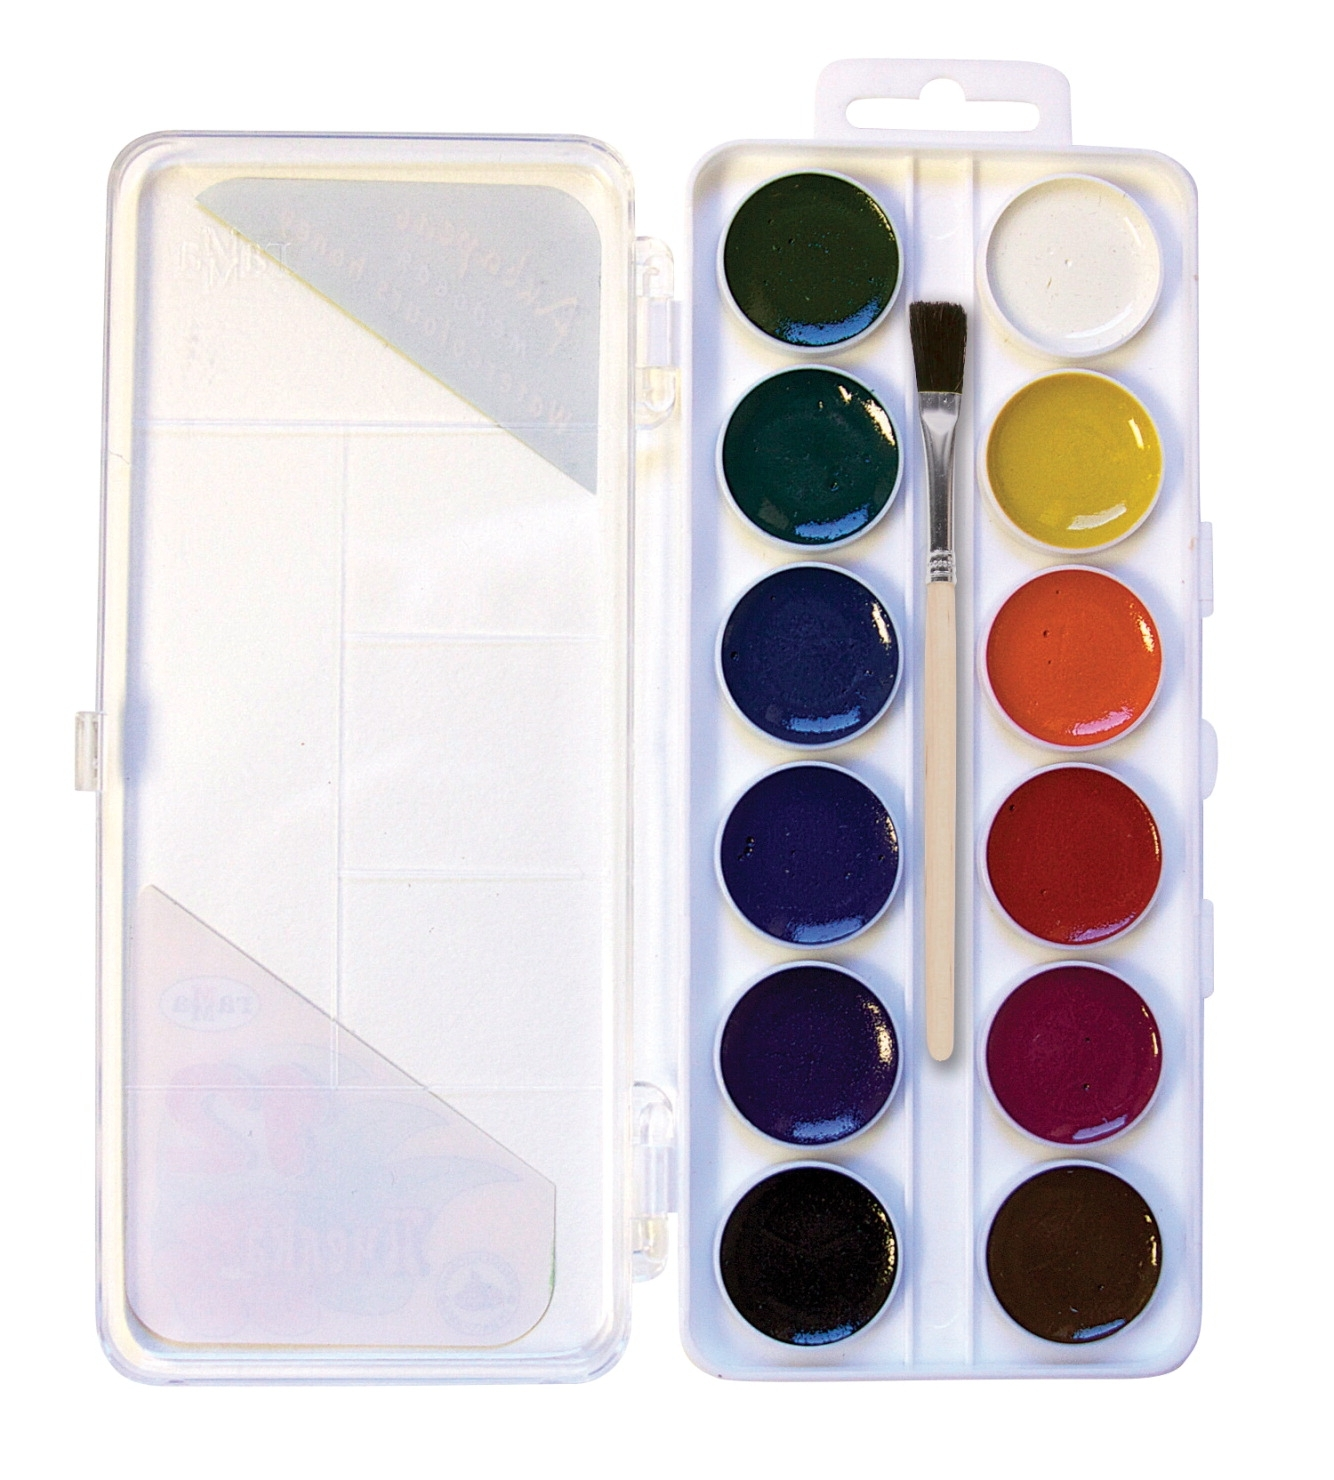 Learning: Classroom Arts & Crafts Paints Watercolor Paints - 1439137 - Jack Richeson Non-toxic Semi-moist Artists Watercolor Paint Set; Assorted Vibrant Color; Set Of 12 1439137